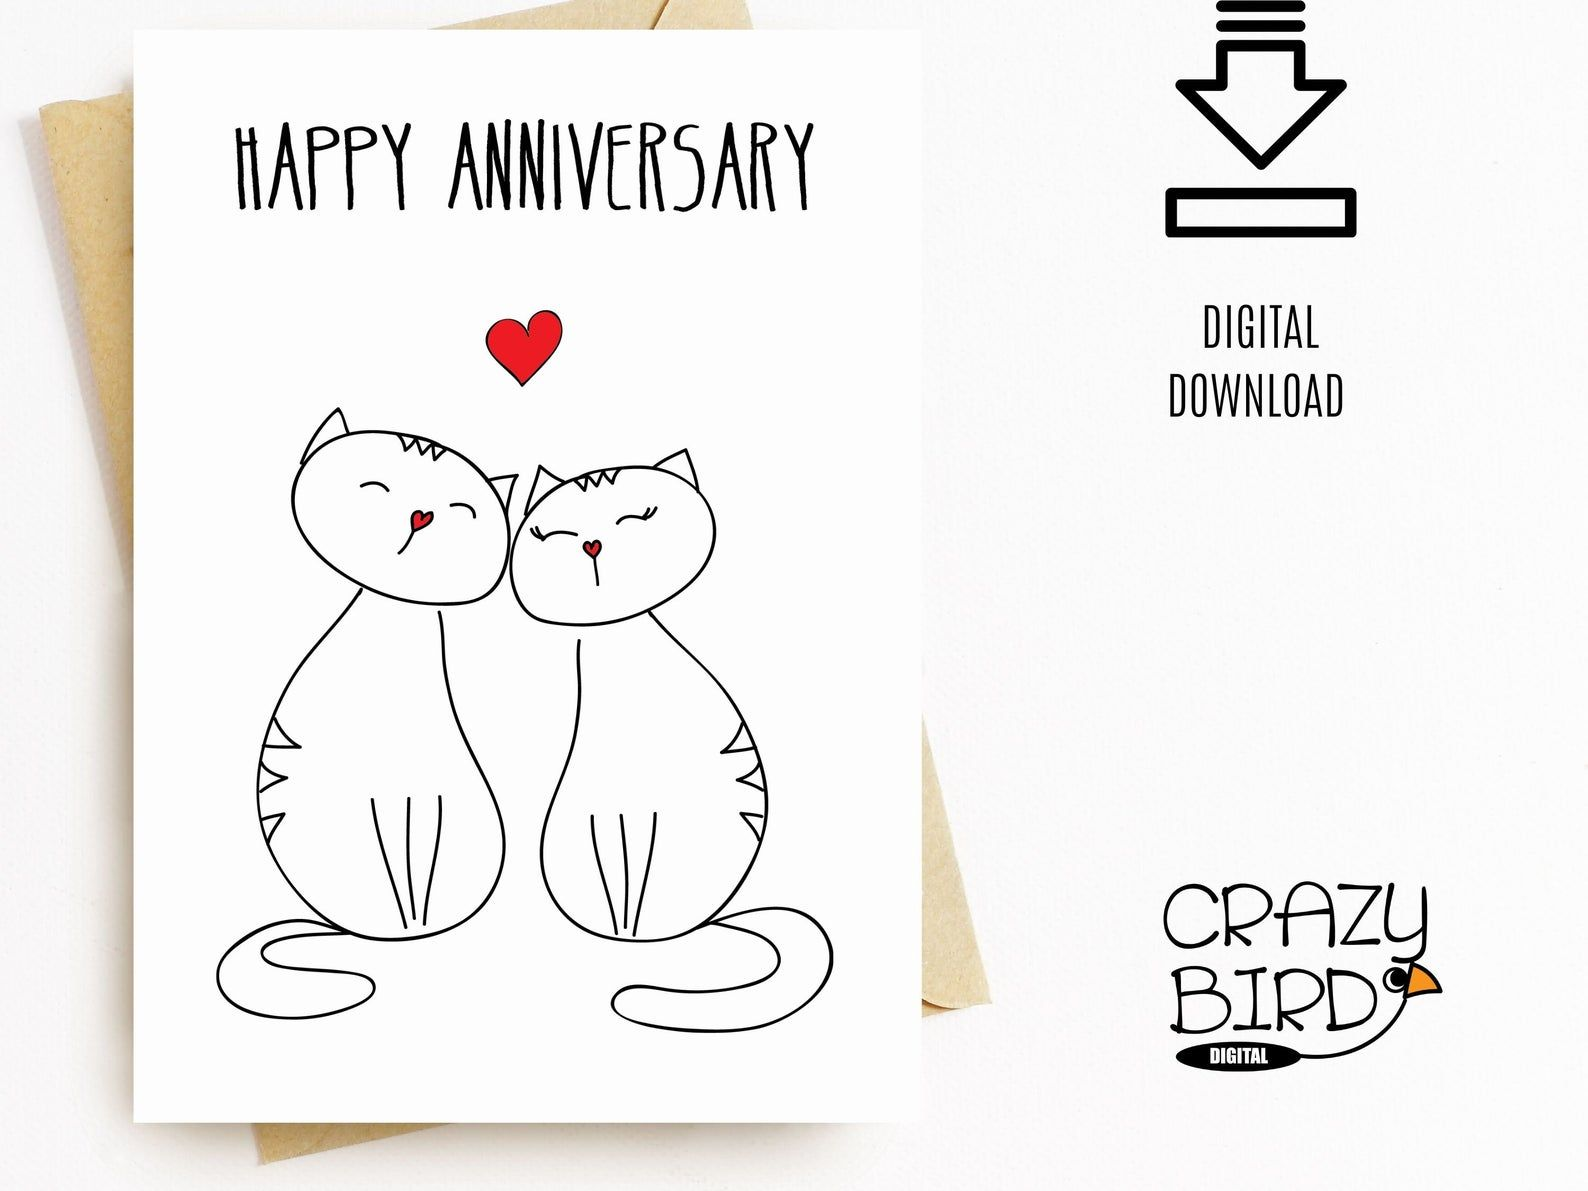 Printable Anniversary Card With Cats Printable Anniversary Etsy In 2021 Printable Anniversary Cards Anniversary Cards For Husband Anniversary Cards For Wife